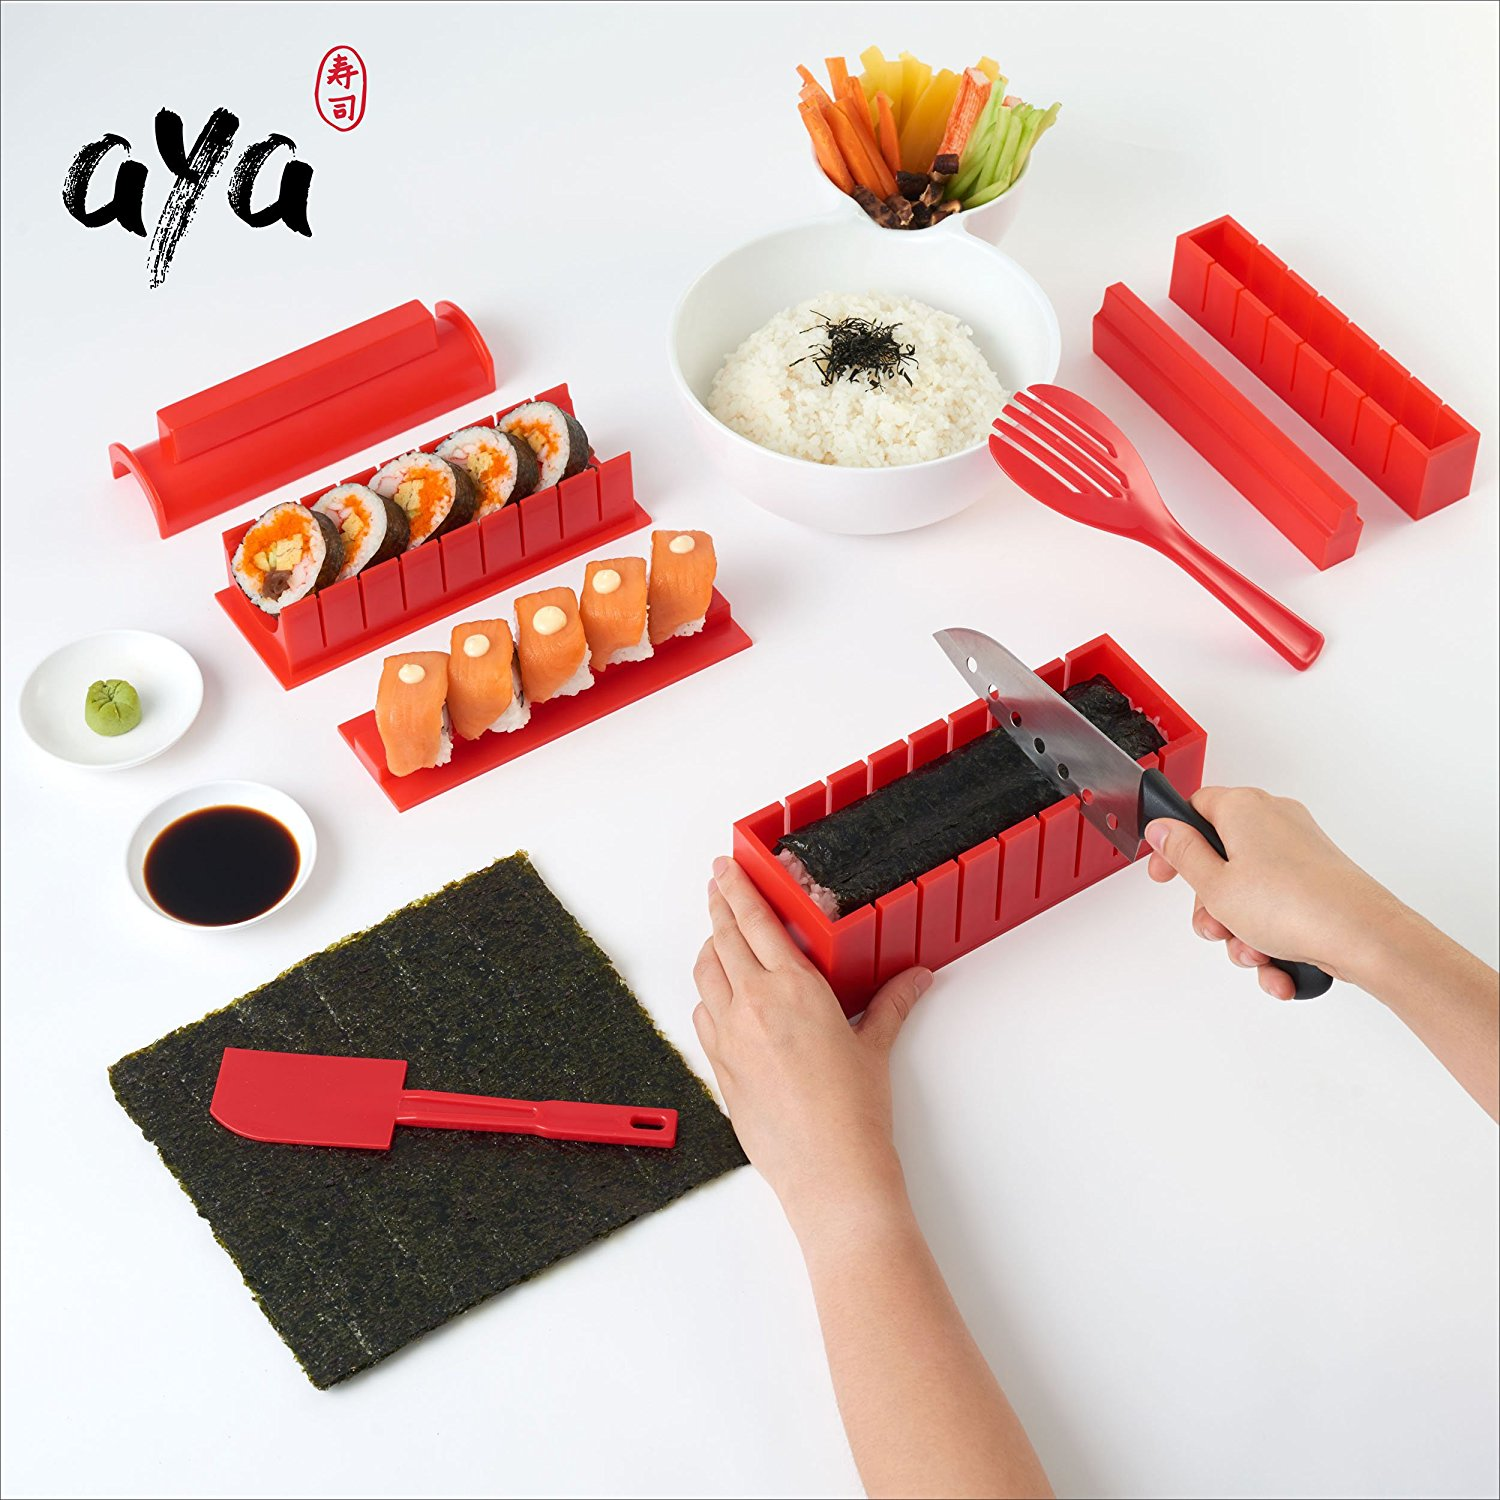 Sushi Making Kit - Original AYA Sushi Maker Deluxe